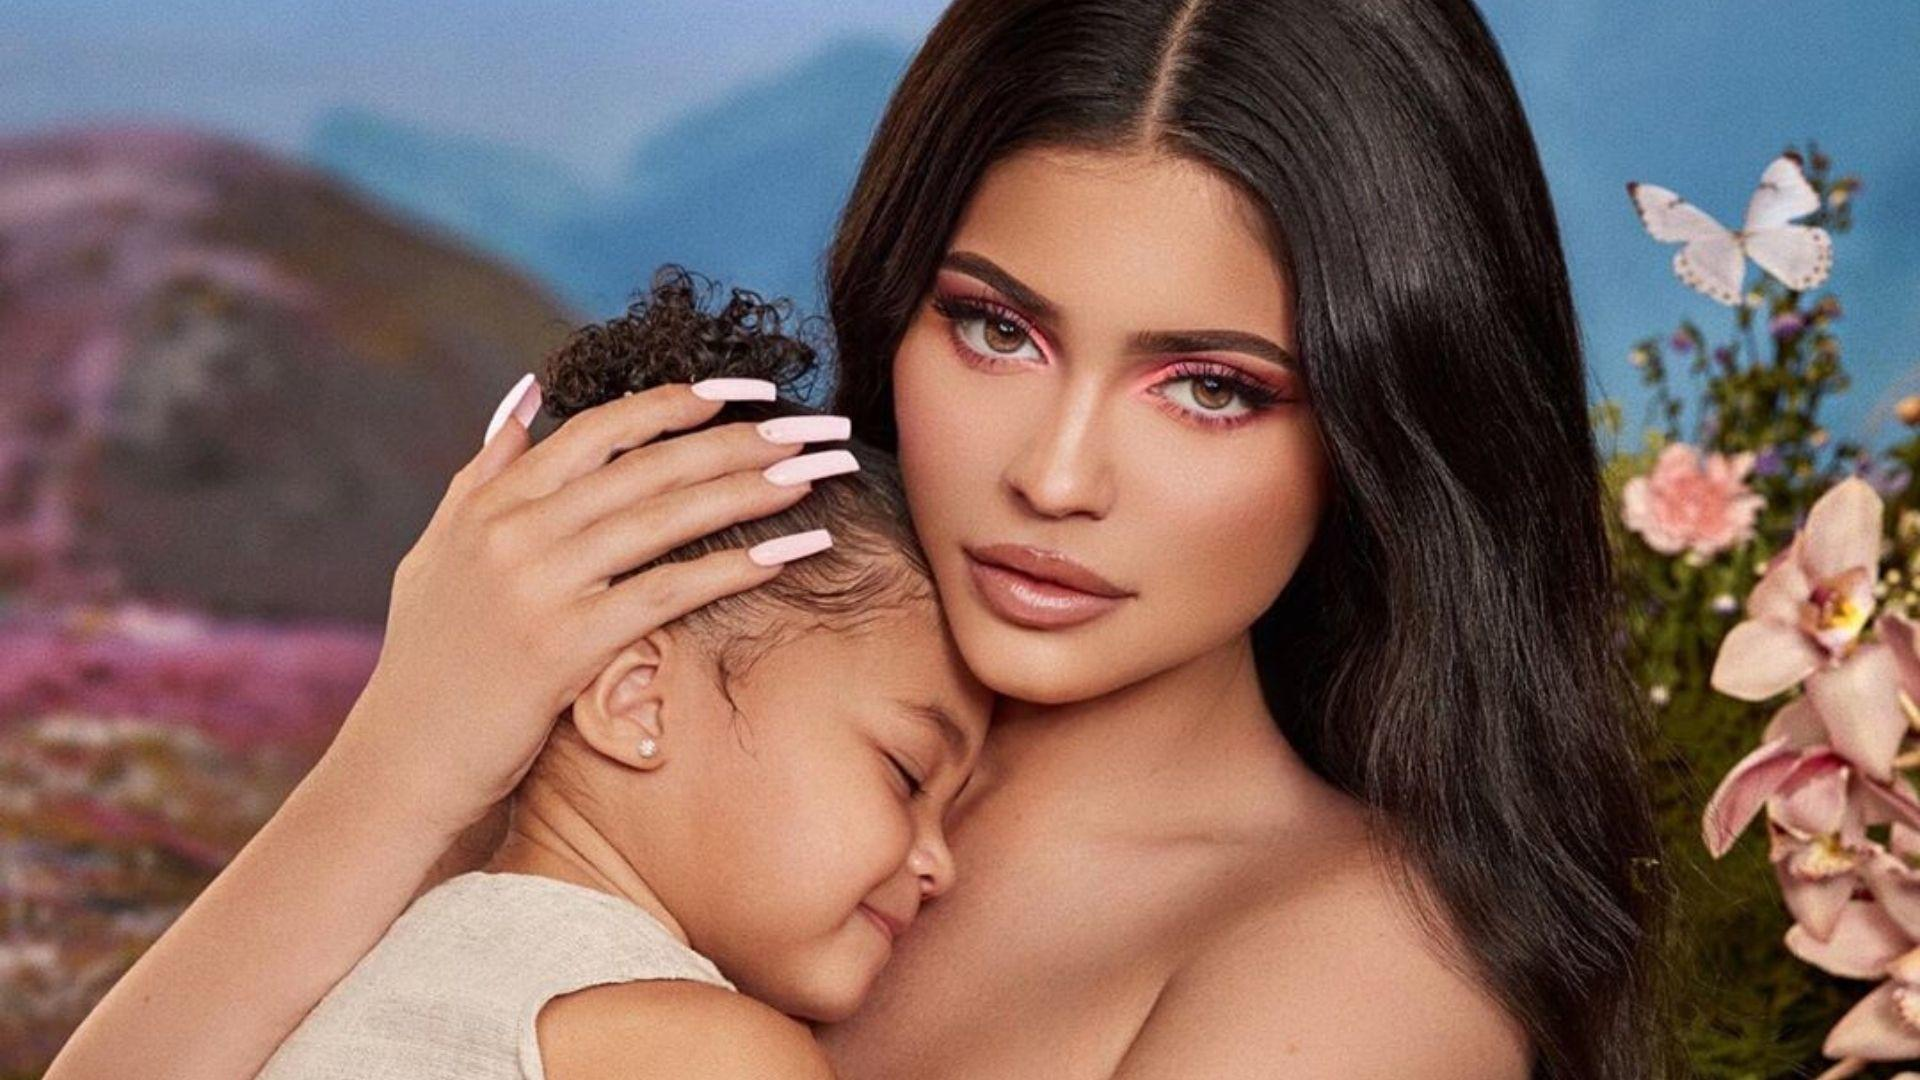 Everything You Need To Know About The Kylie Cosmetics x Stormi Webster Collab